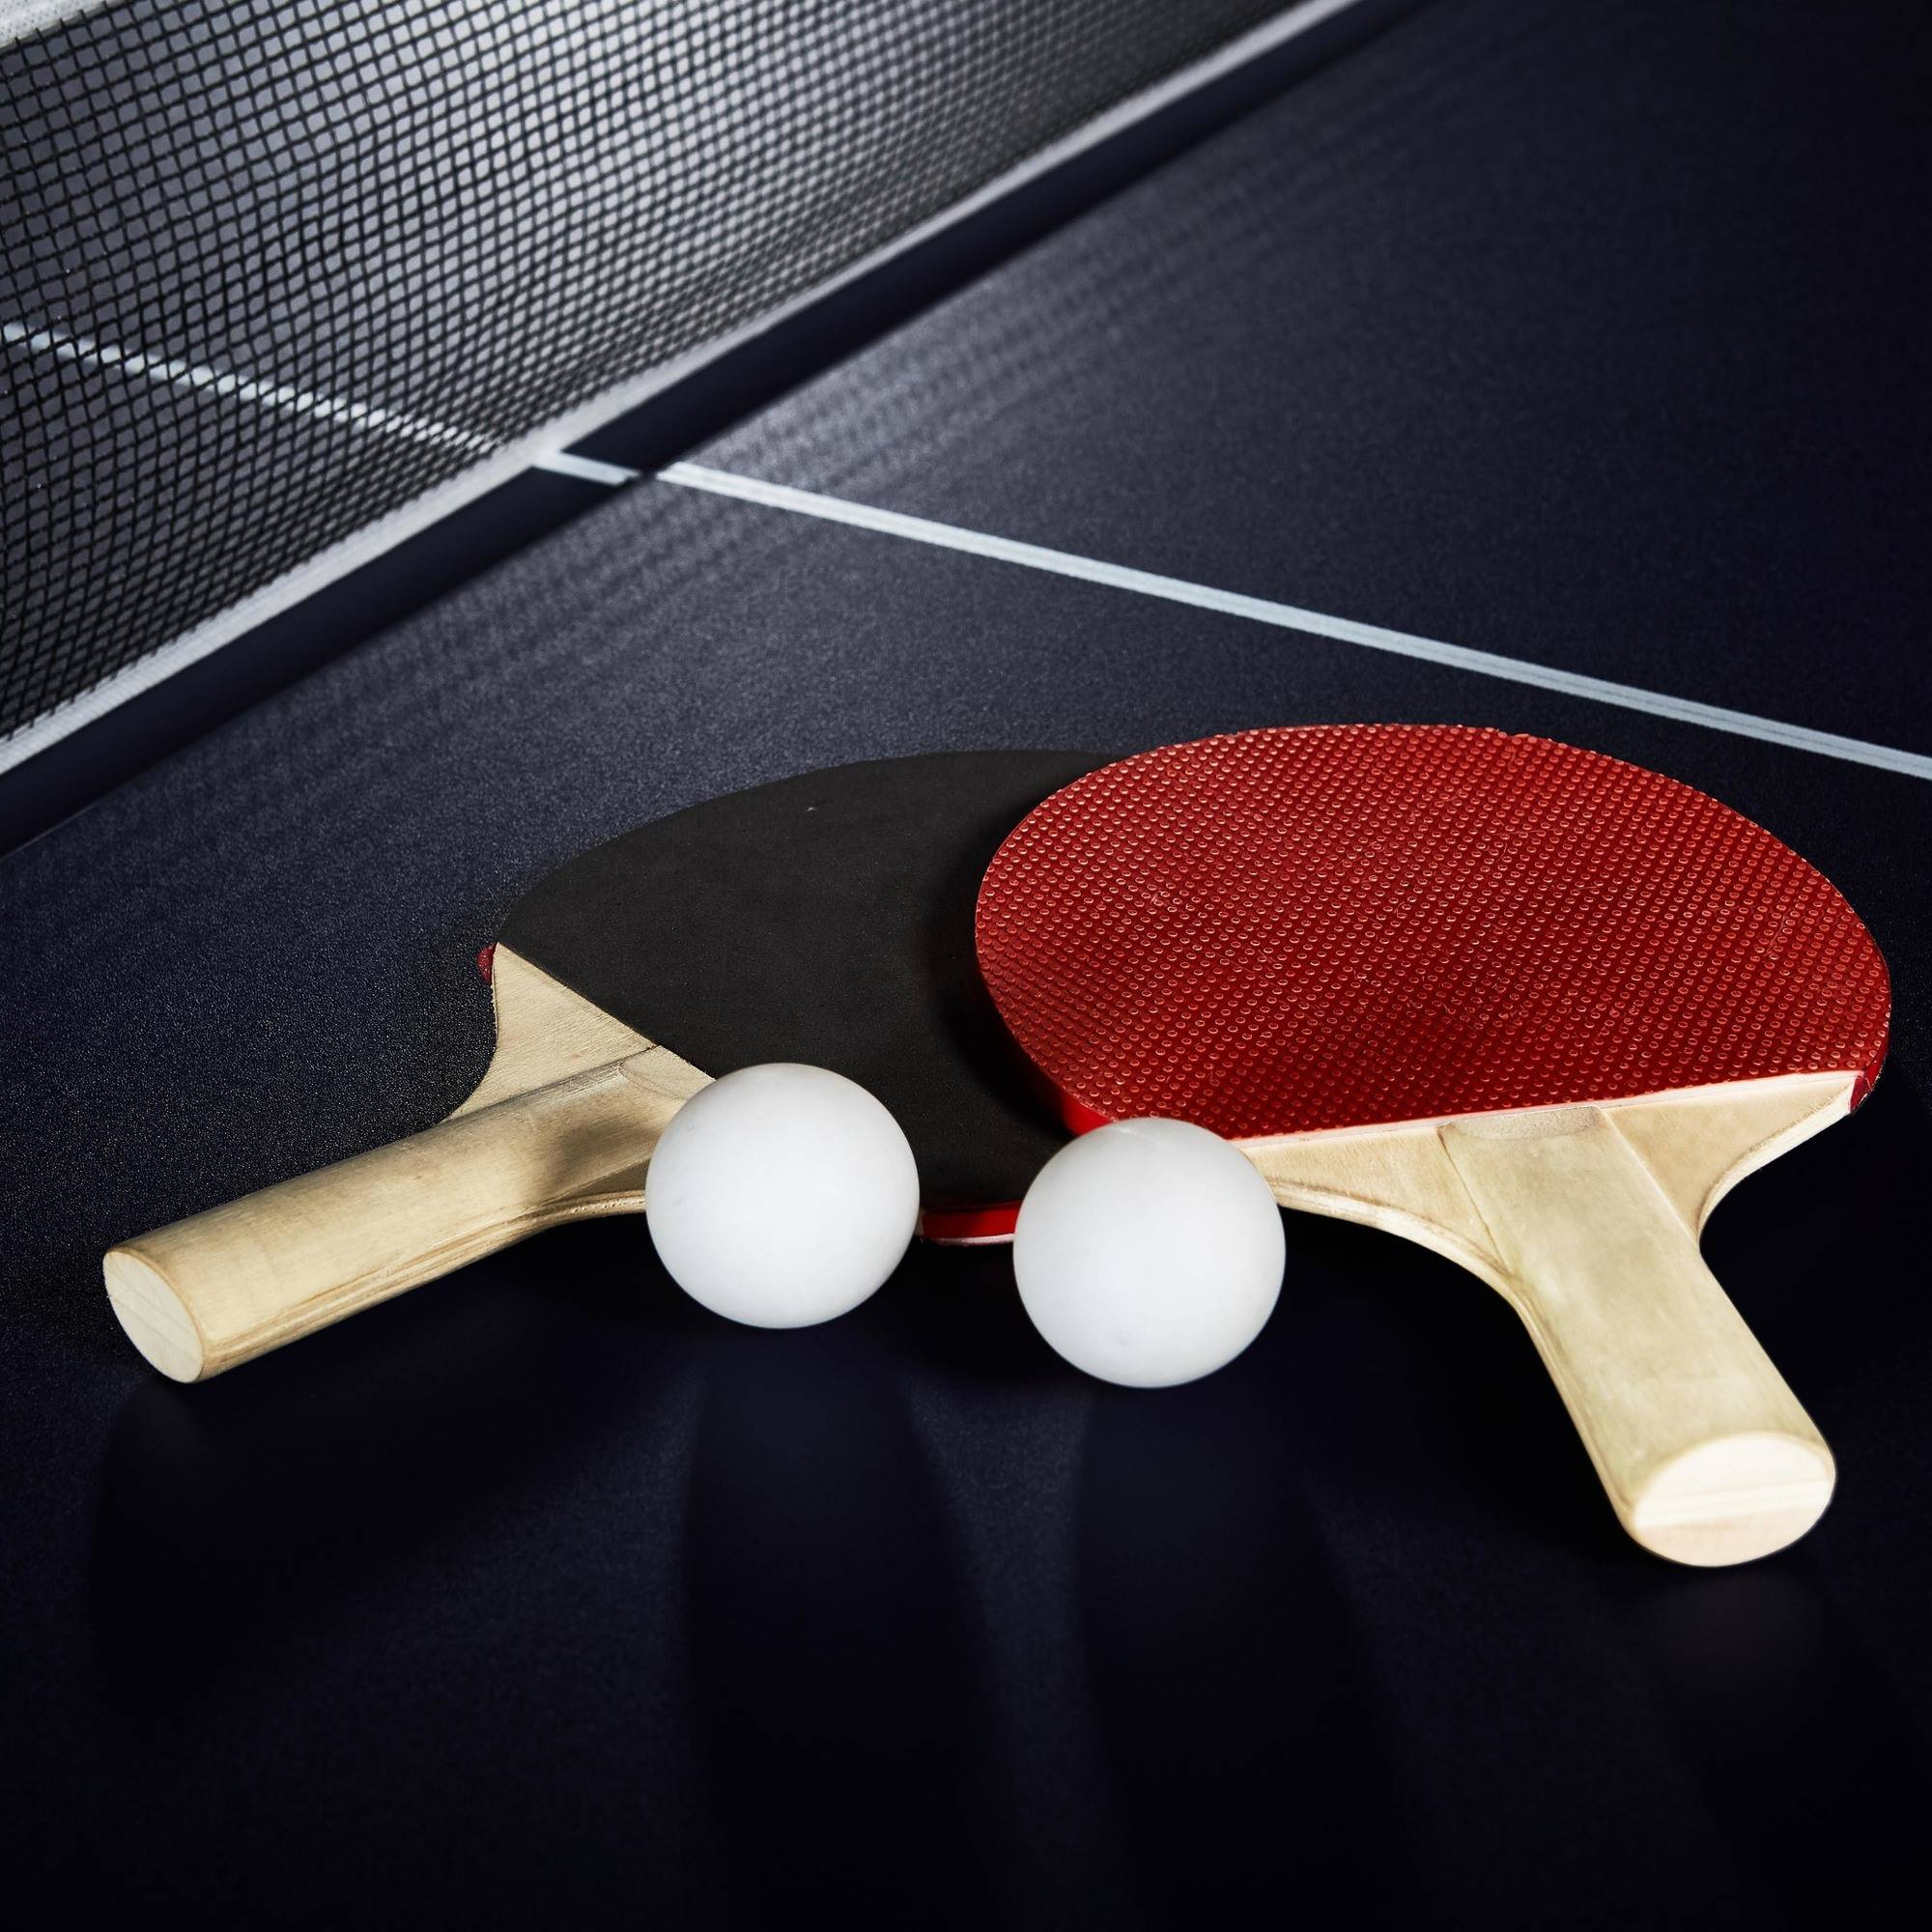 MD Sports Official Size Table Tennis Table, With Paddle And Balls,  Blue/White   Walmart.com